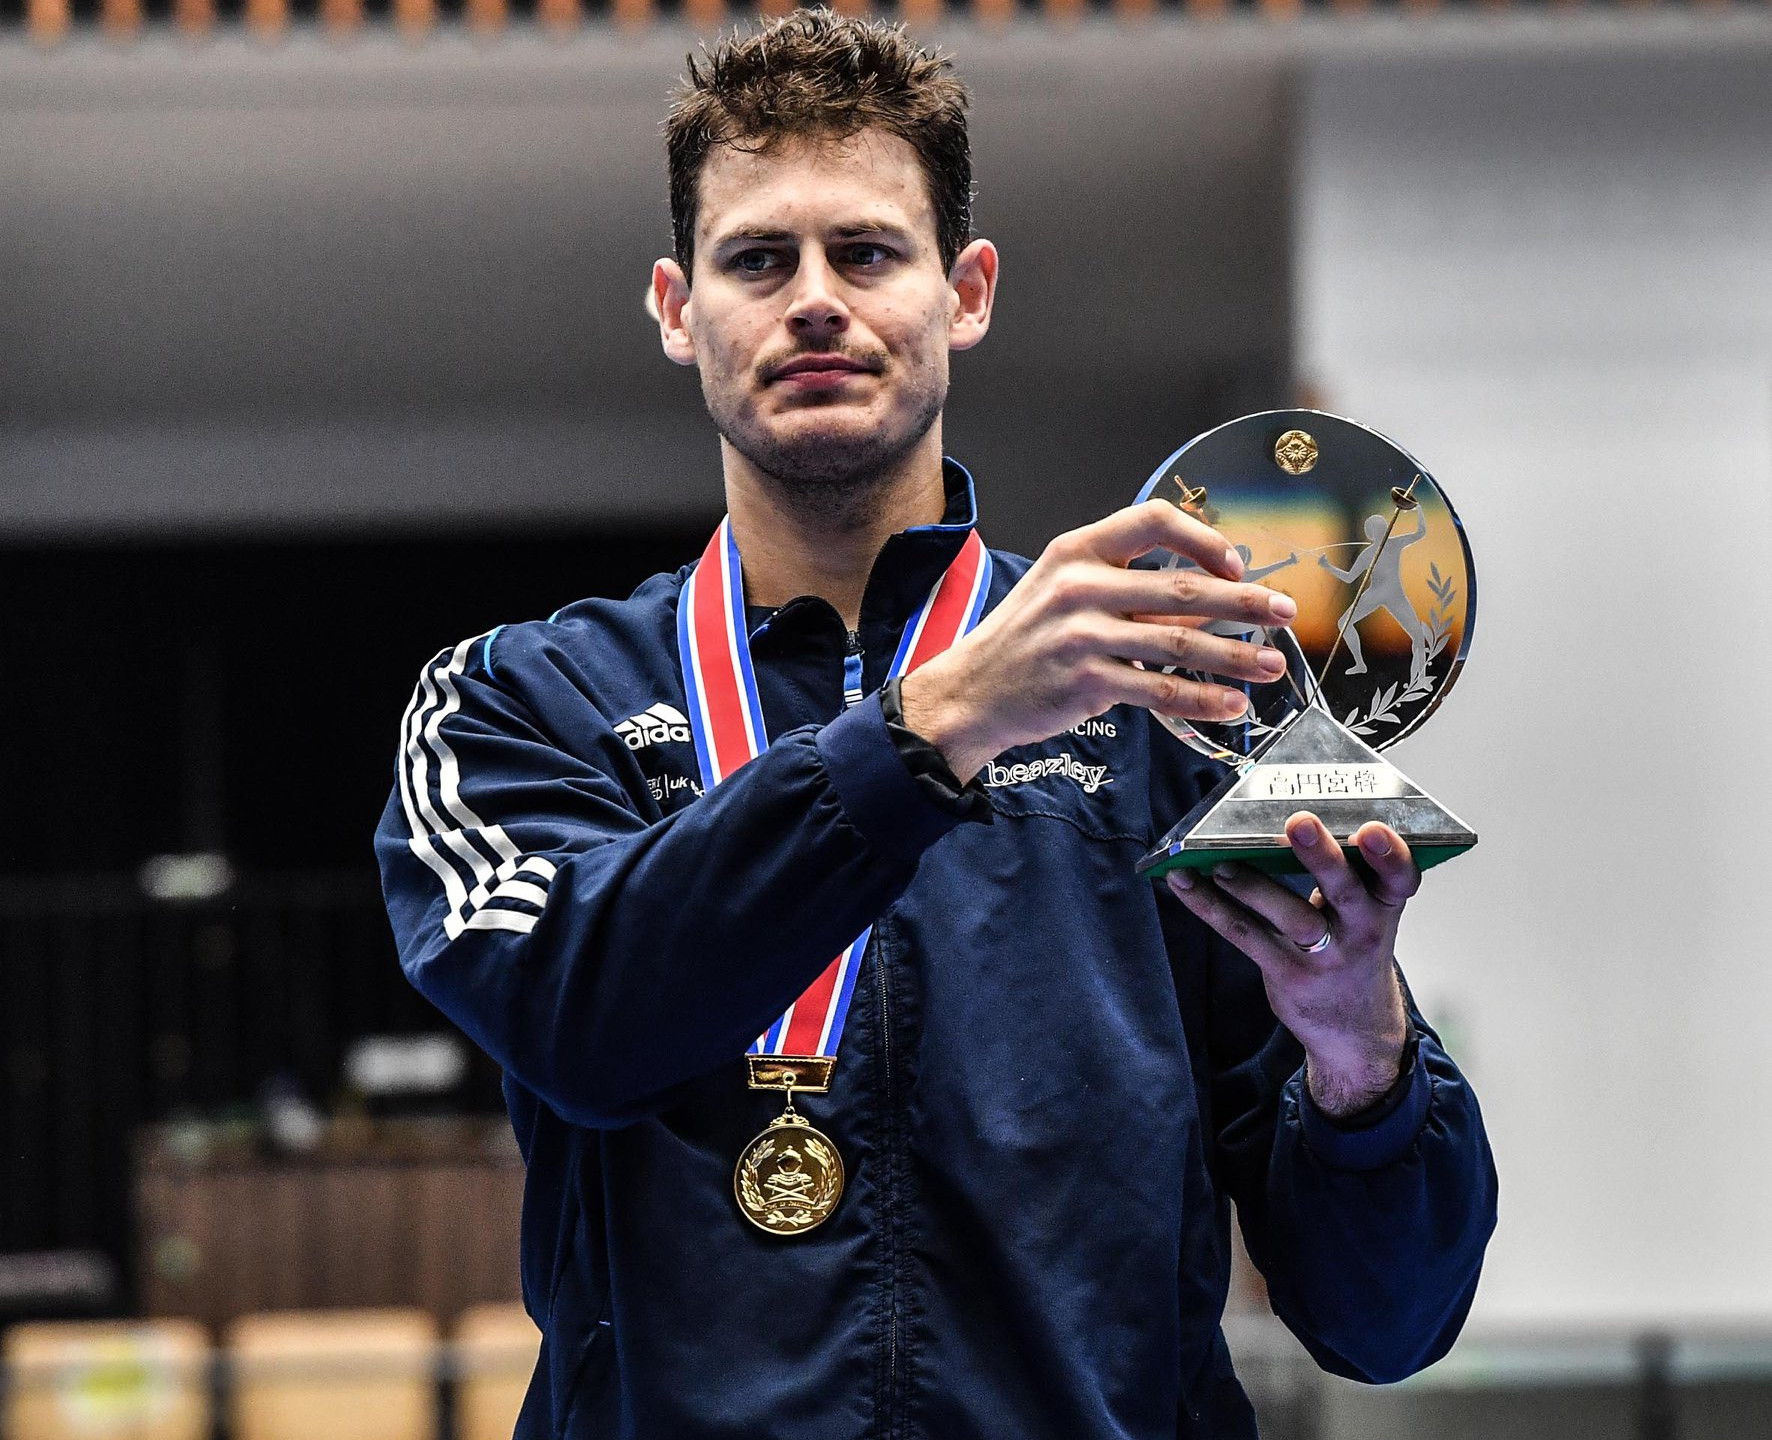 Richard with the Tokyo trophy